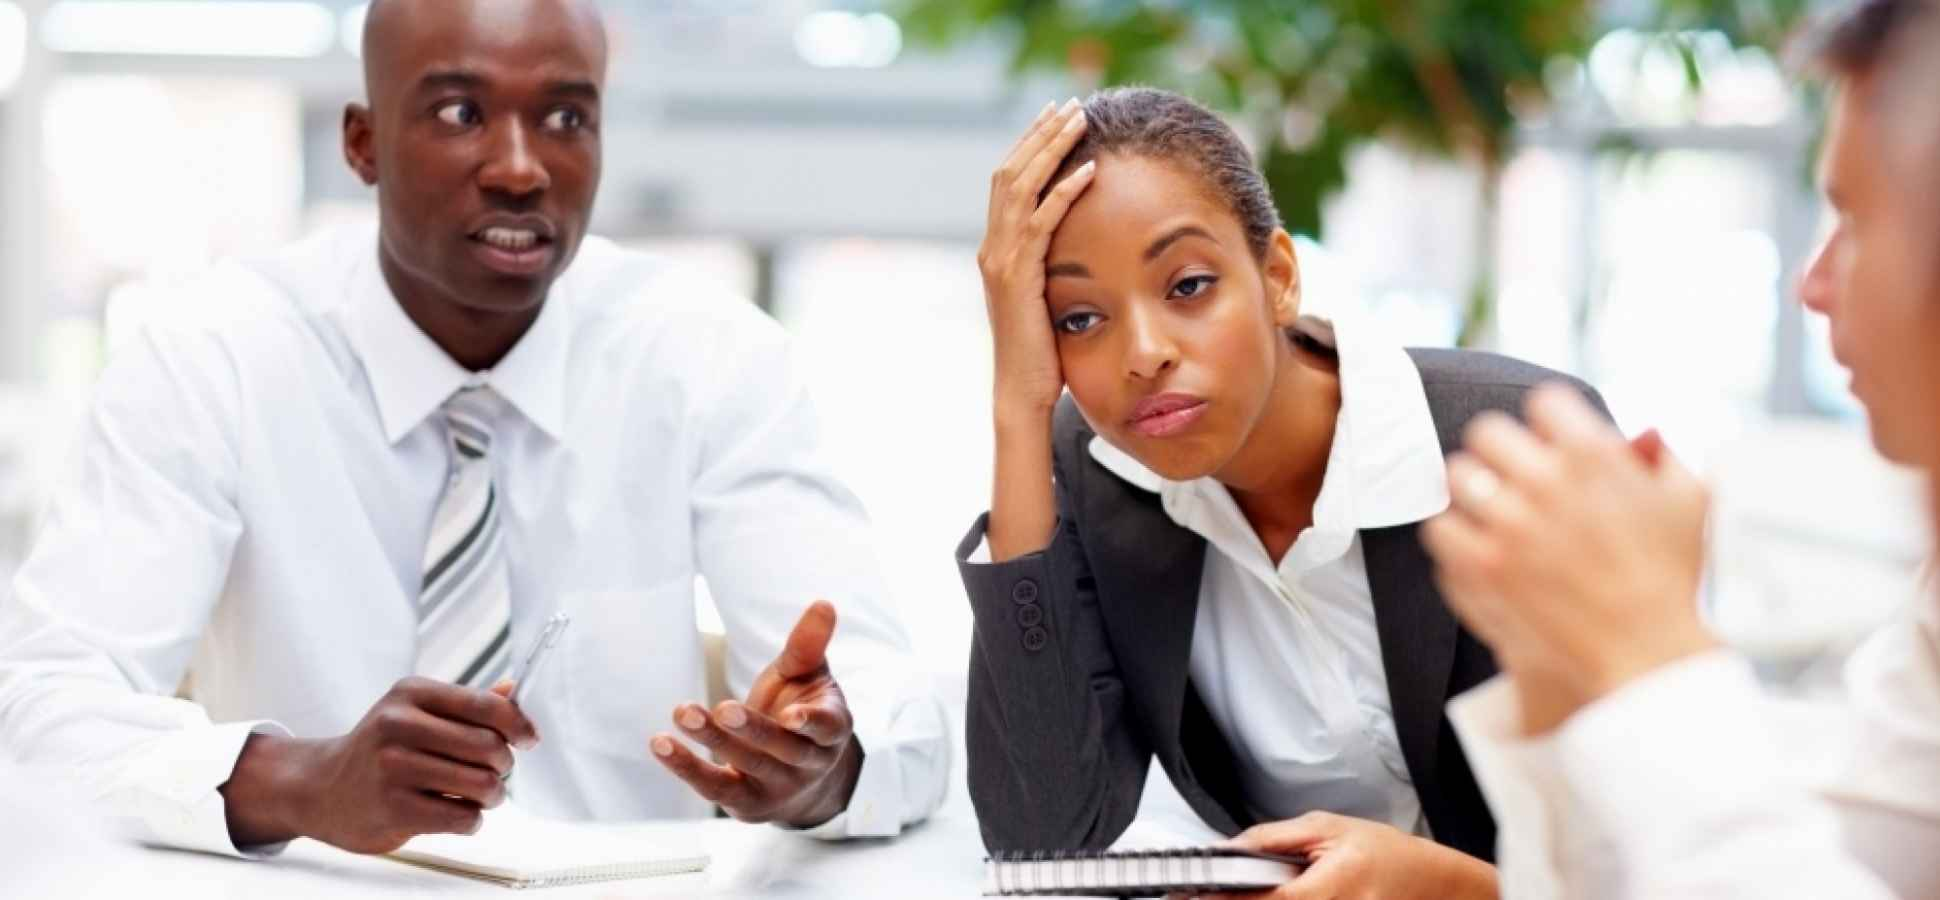 10 Ways to Make Peace With Disgruntled Employees